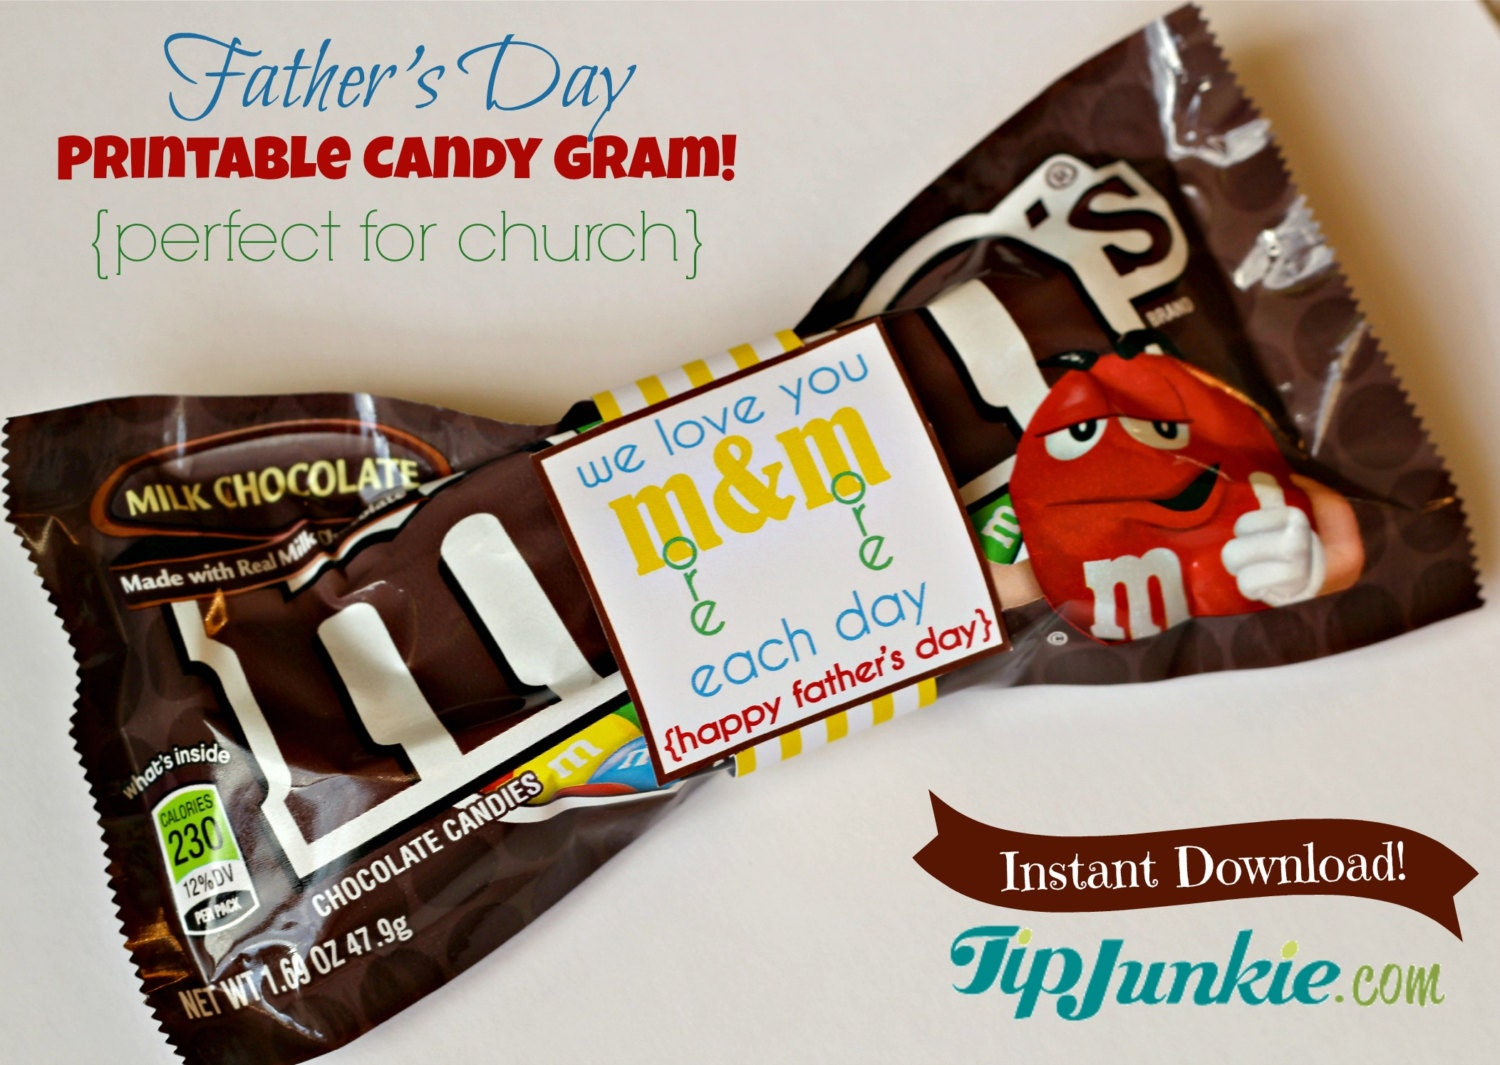 M&M Candy Bow Tie for Father's Day Printable Wrapper